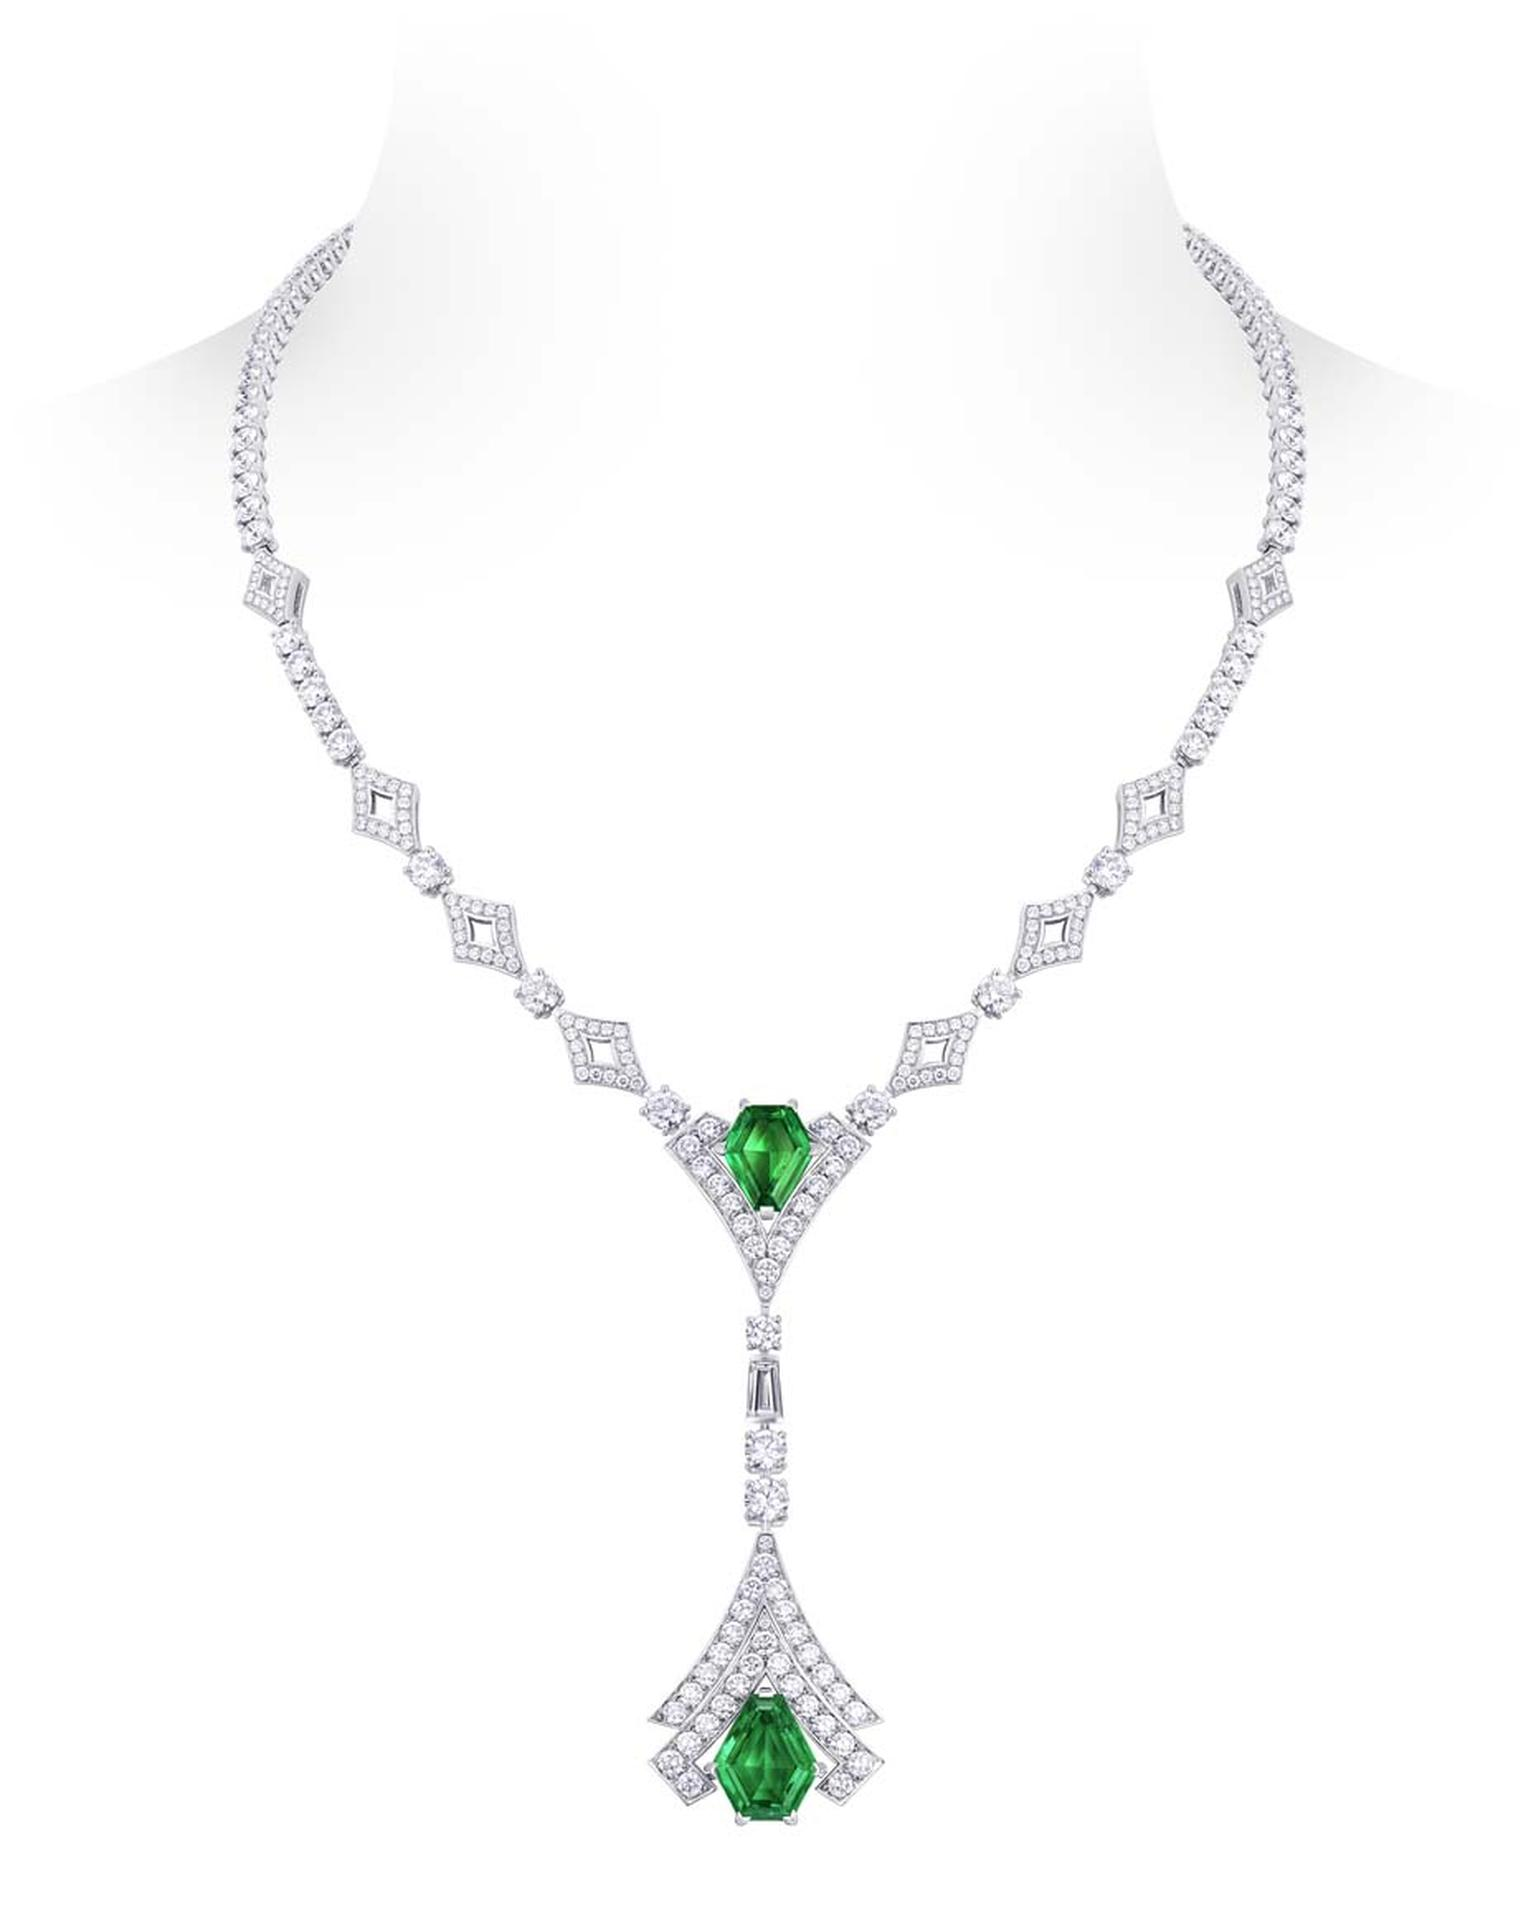 Louis Vuitton Acte V  Metamorphosis necklace featuring Pandjshir emeralds and diamonds.